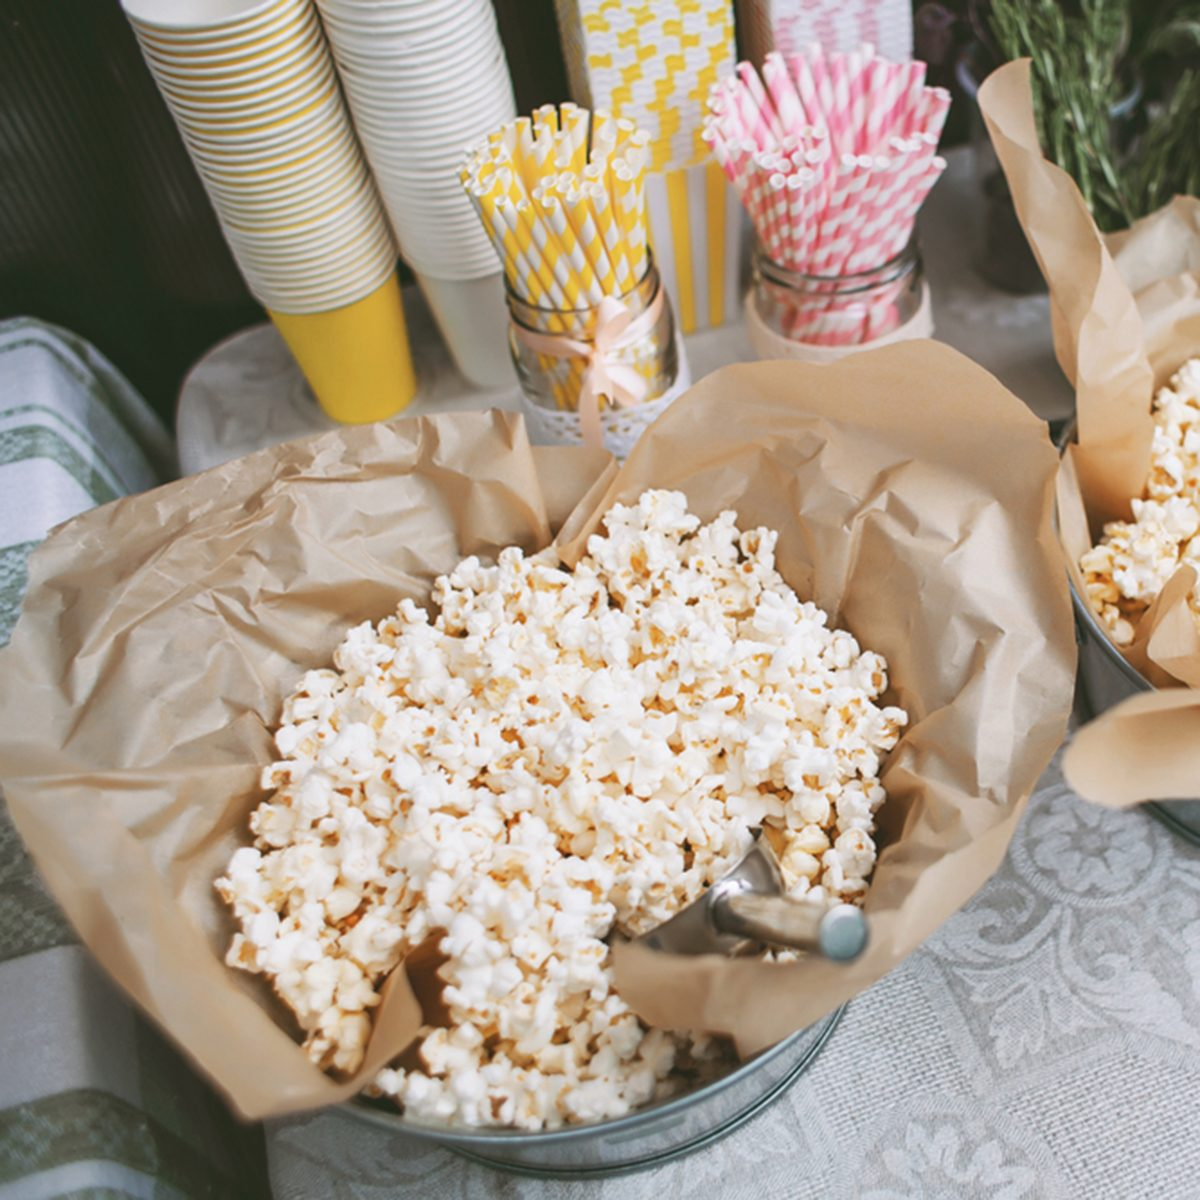 Details of a tasty candy bar with buckets of popcorn and pasteboard pink and yellow glasses